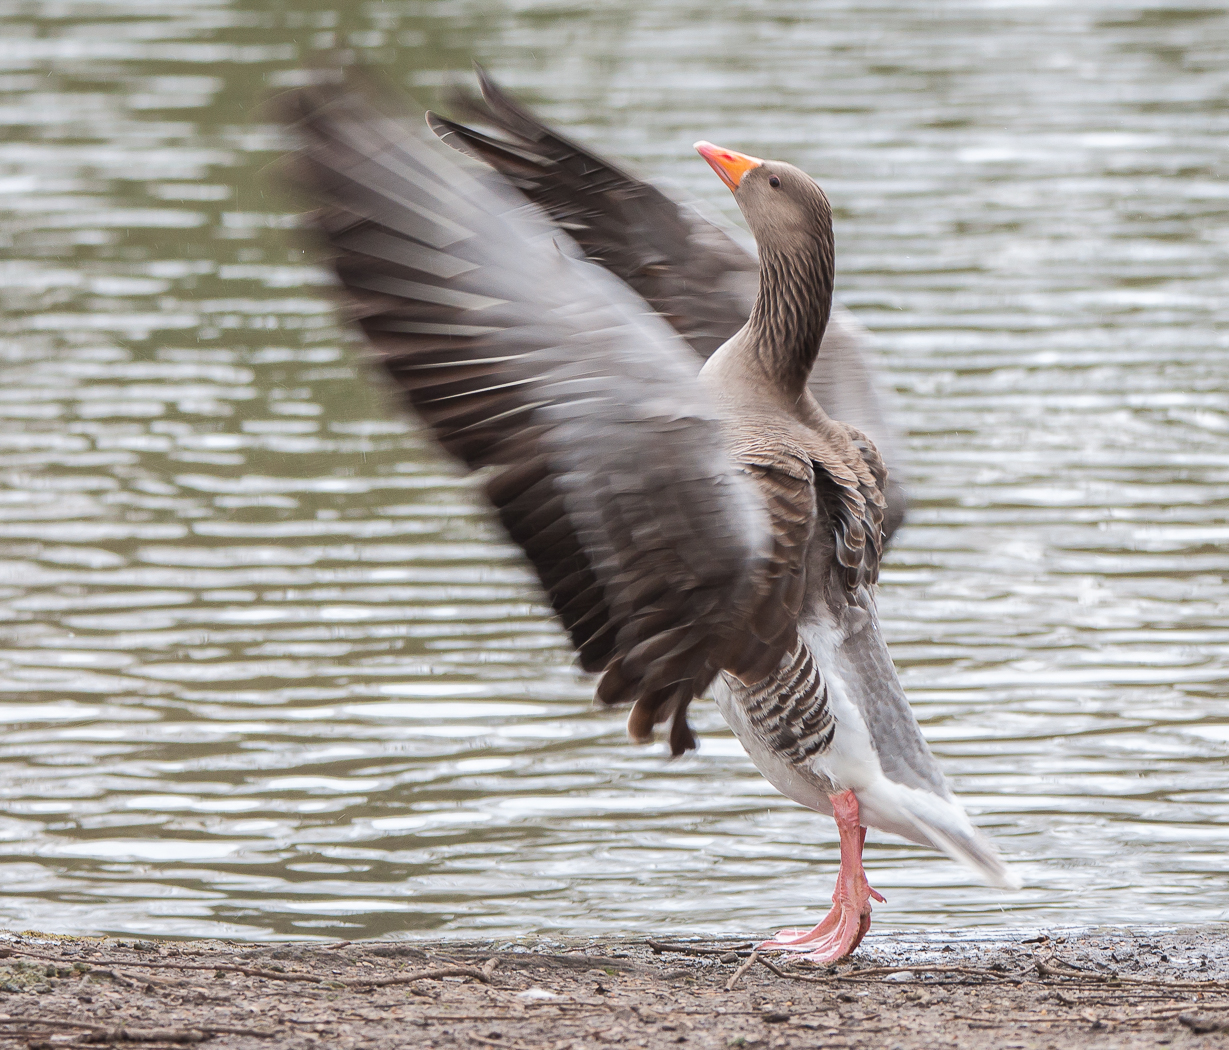 Greylag goose (Anser anser) stretching its wings